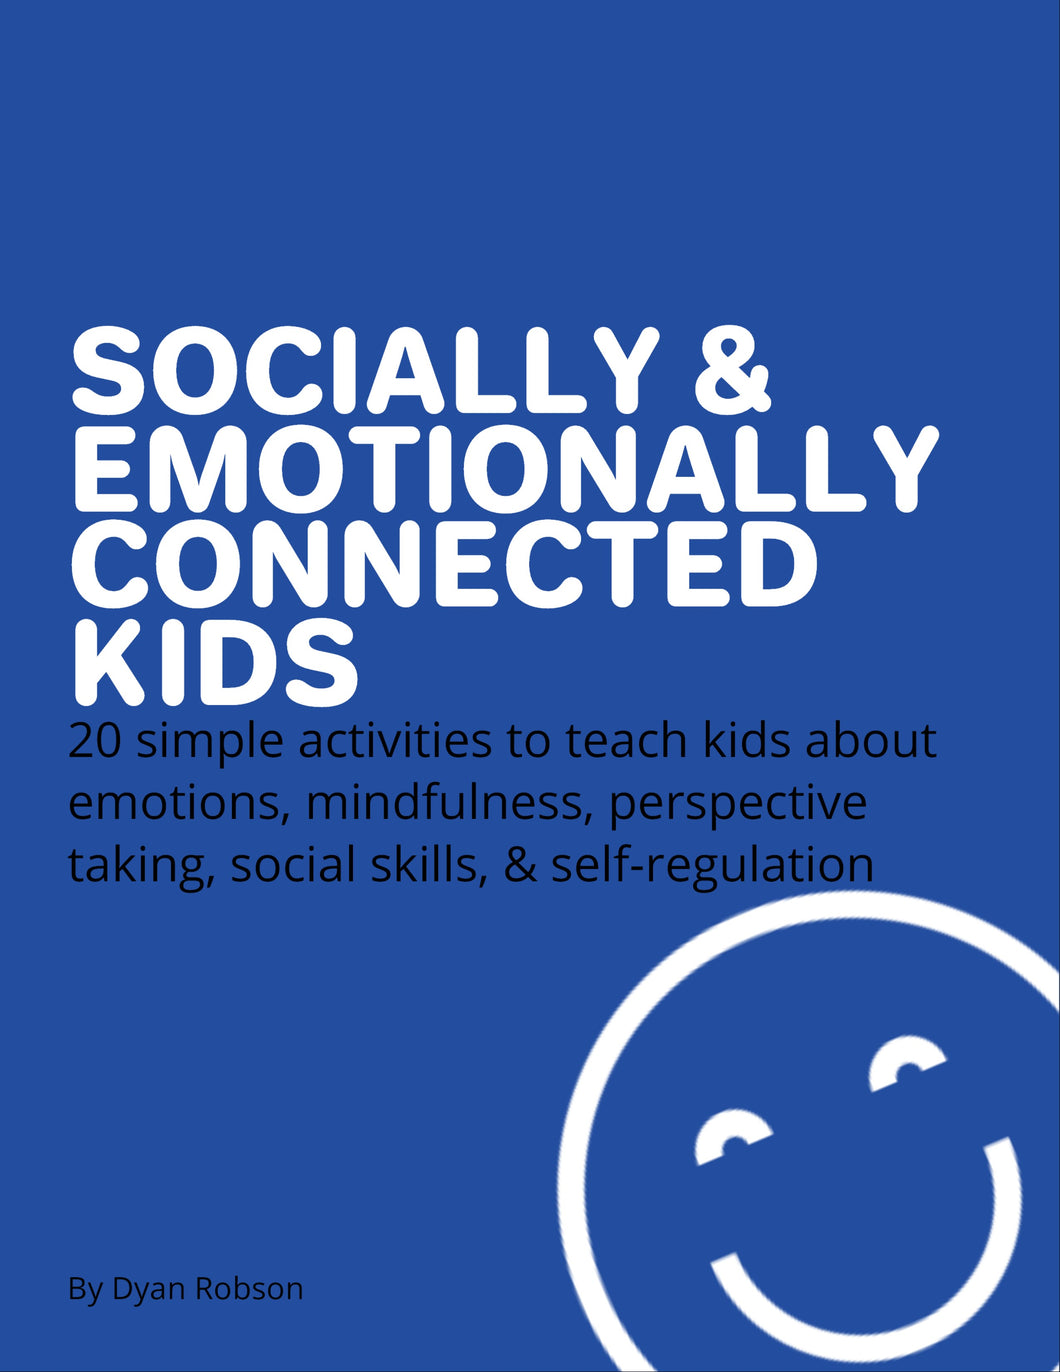 Socially & Emotionally Connected Kids